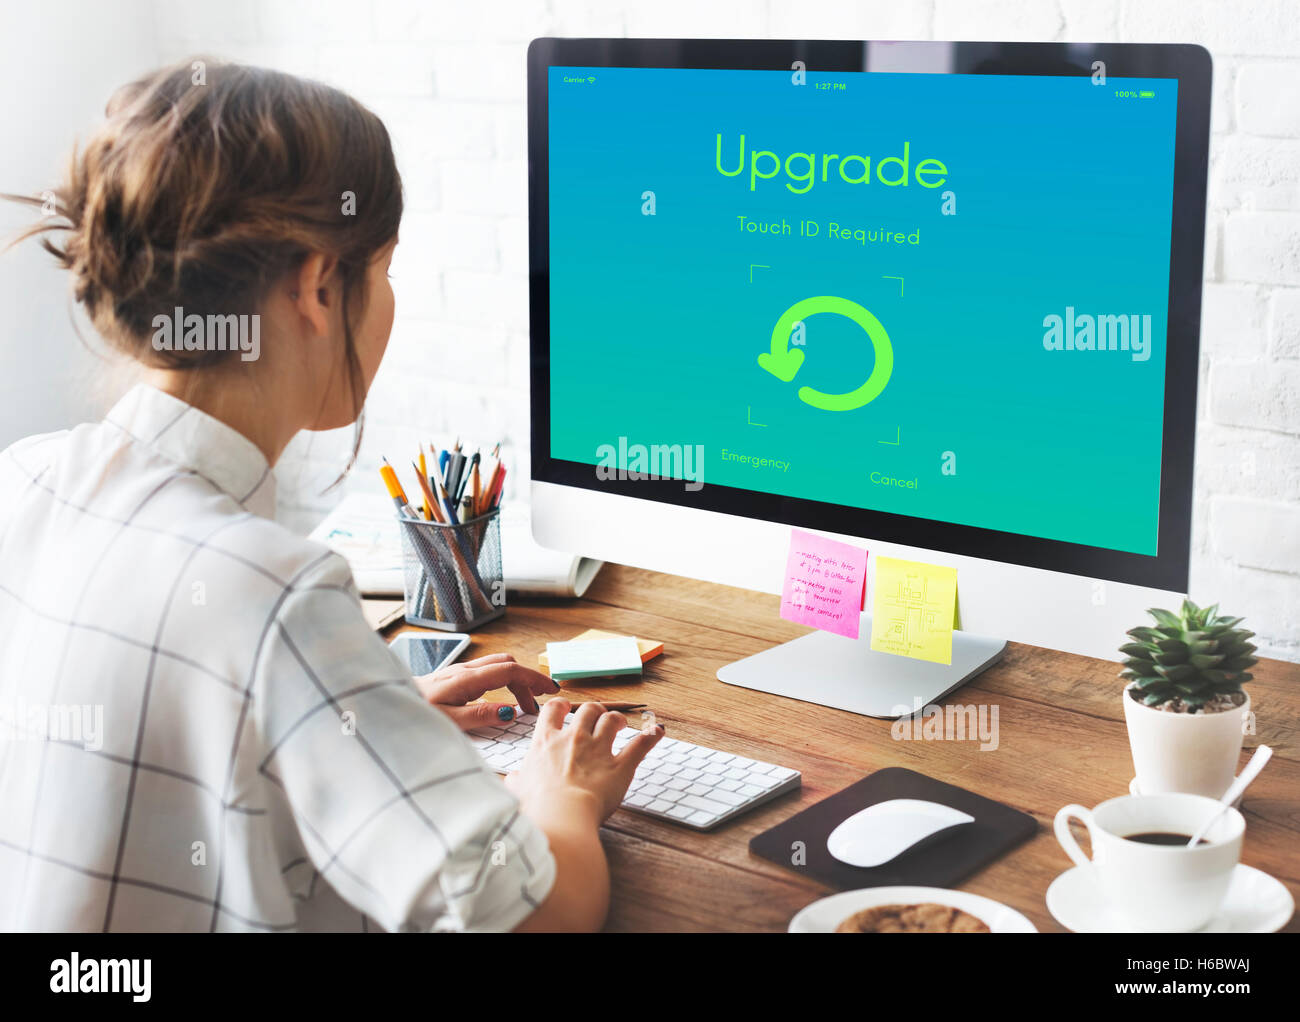 Upgrade Update New Version Concept - Stock Image